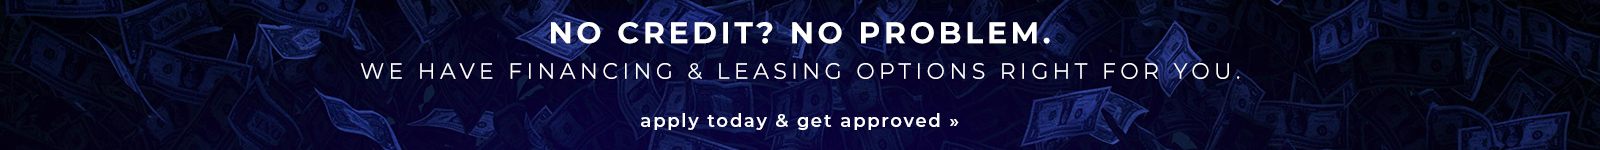 Financing & Leasing Options